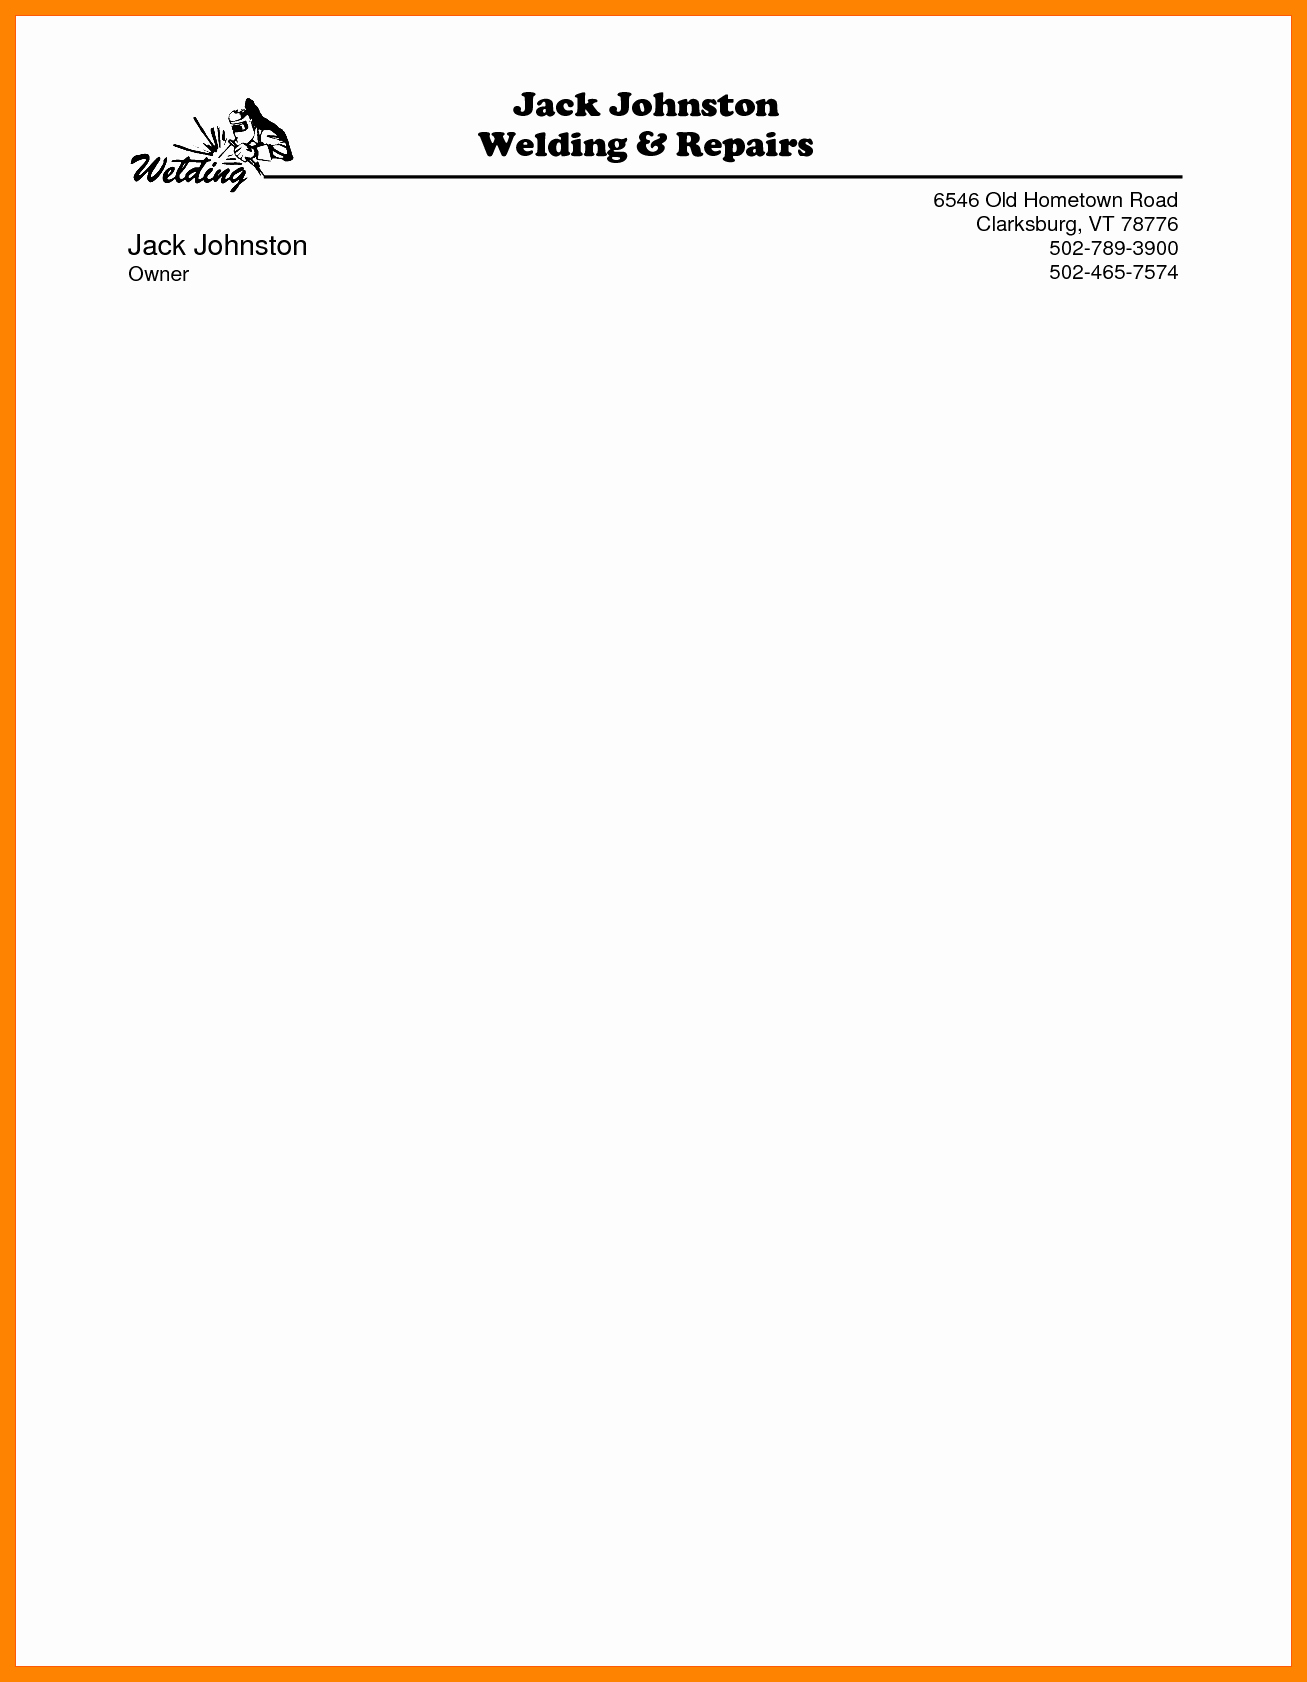 Examples Of Letterheads for Business New Microsoft Word Letterhead Template Free